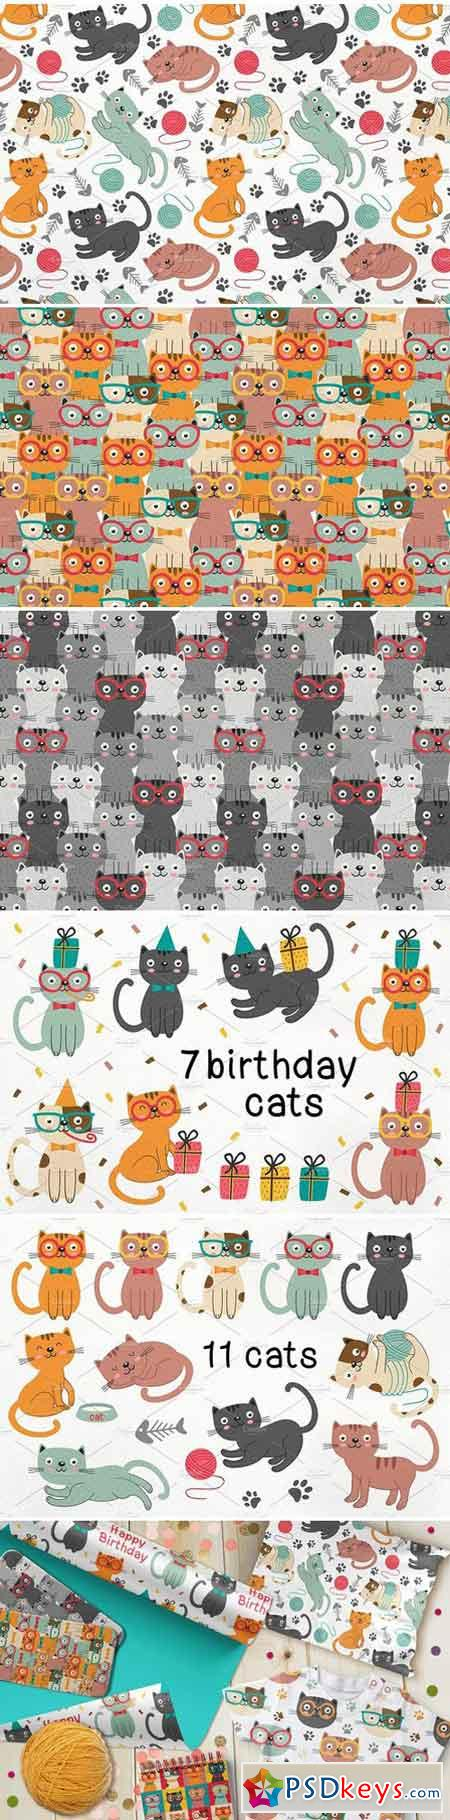 cats collection 2057435